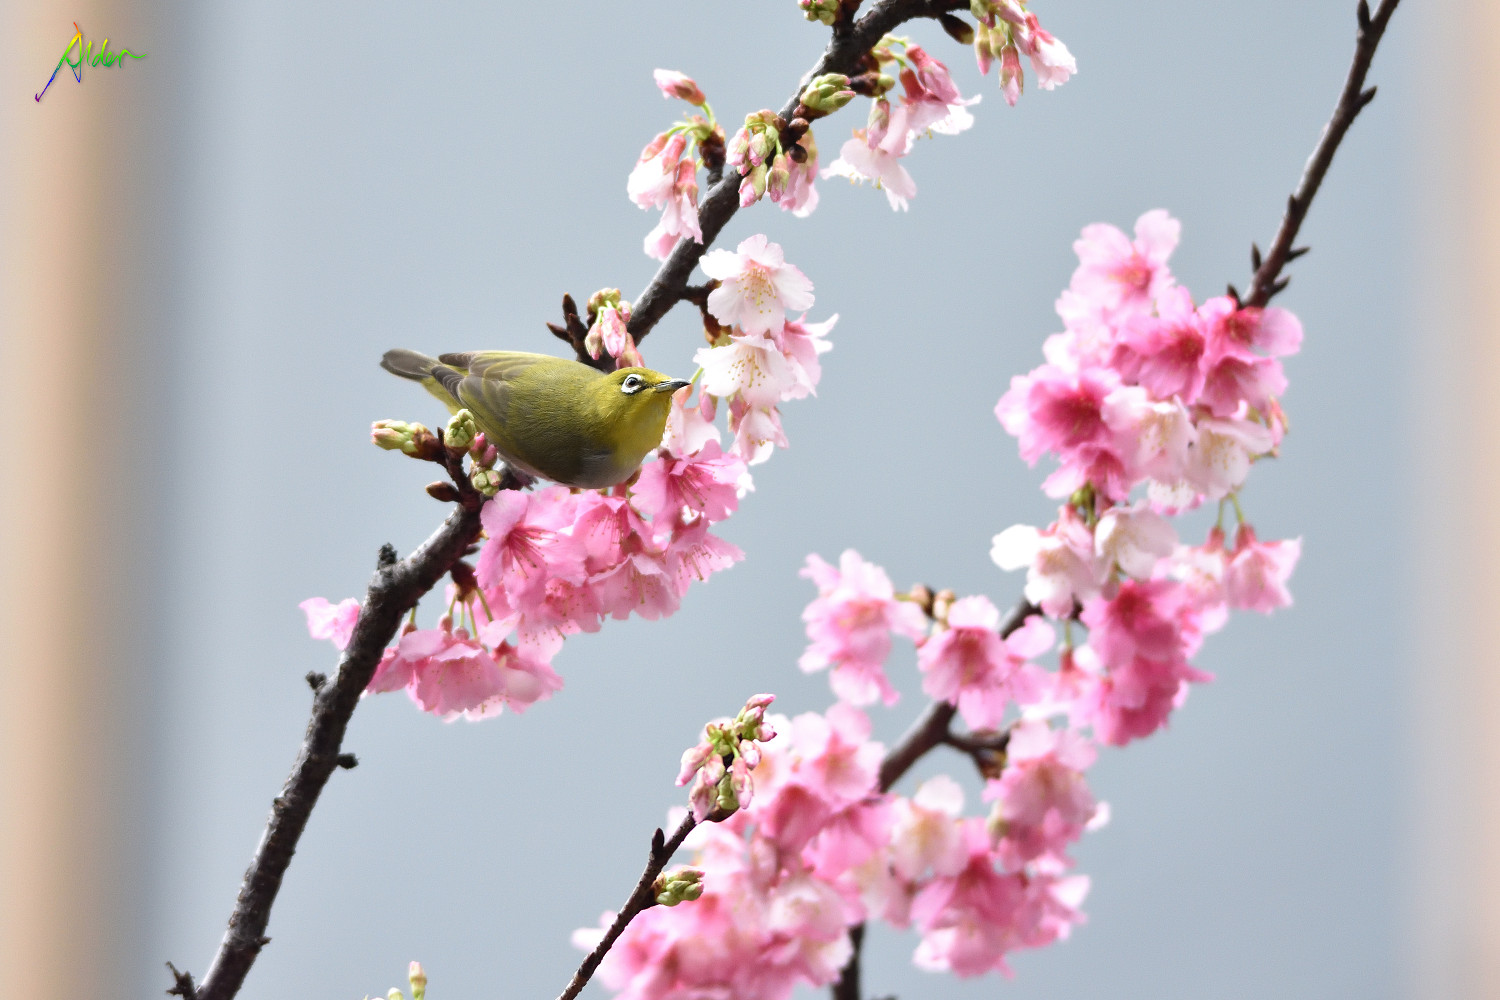 Sakura_White-eye_8010